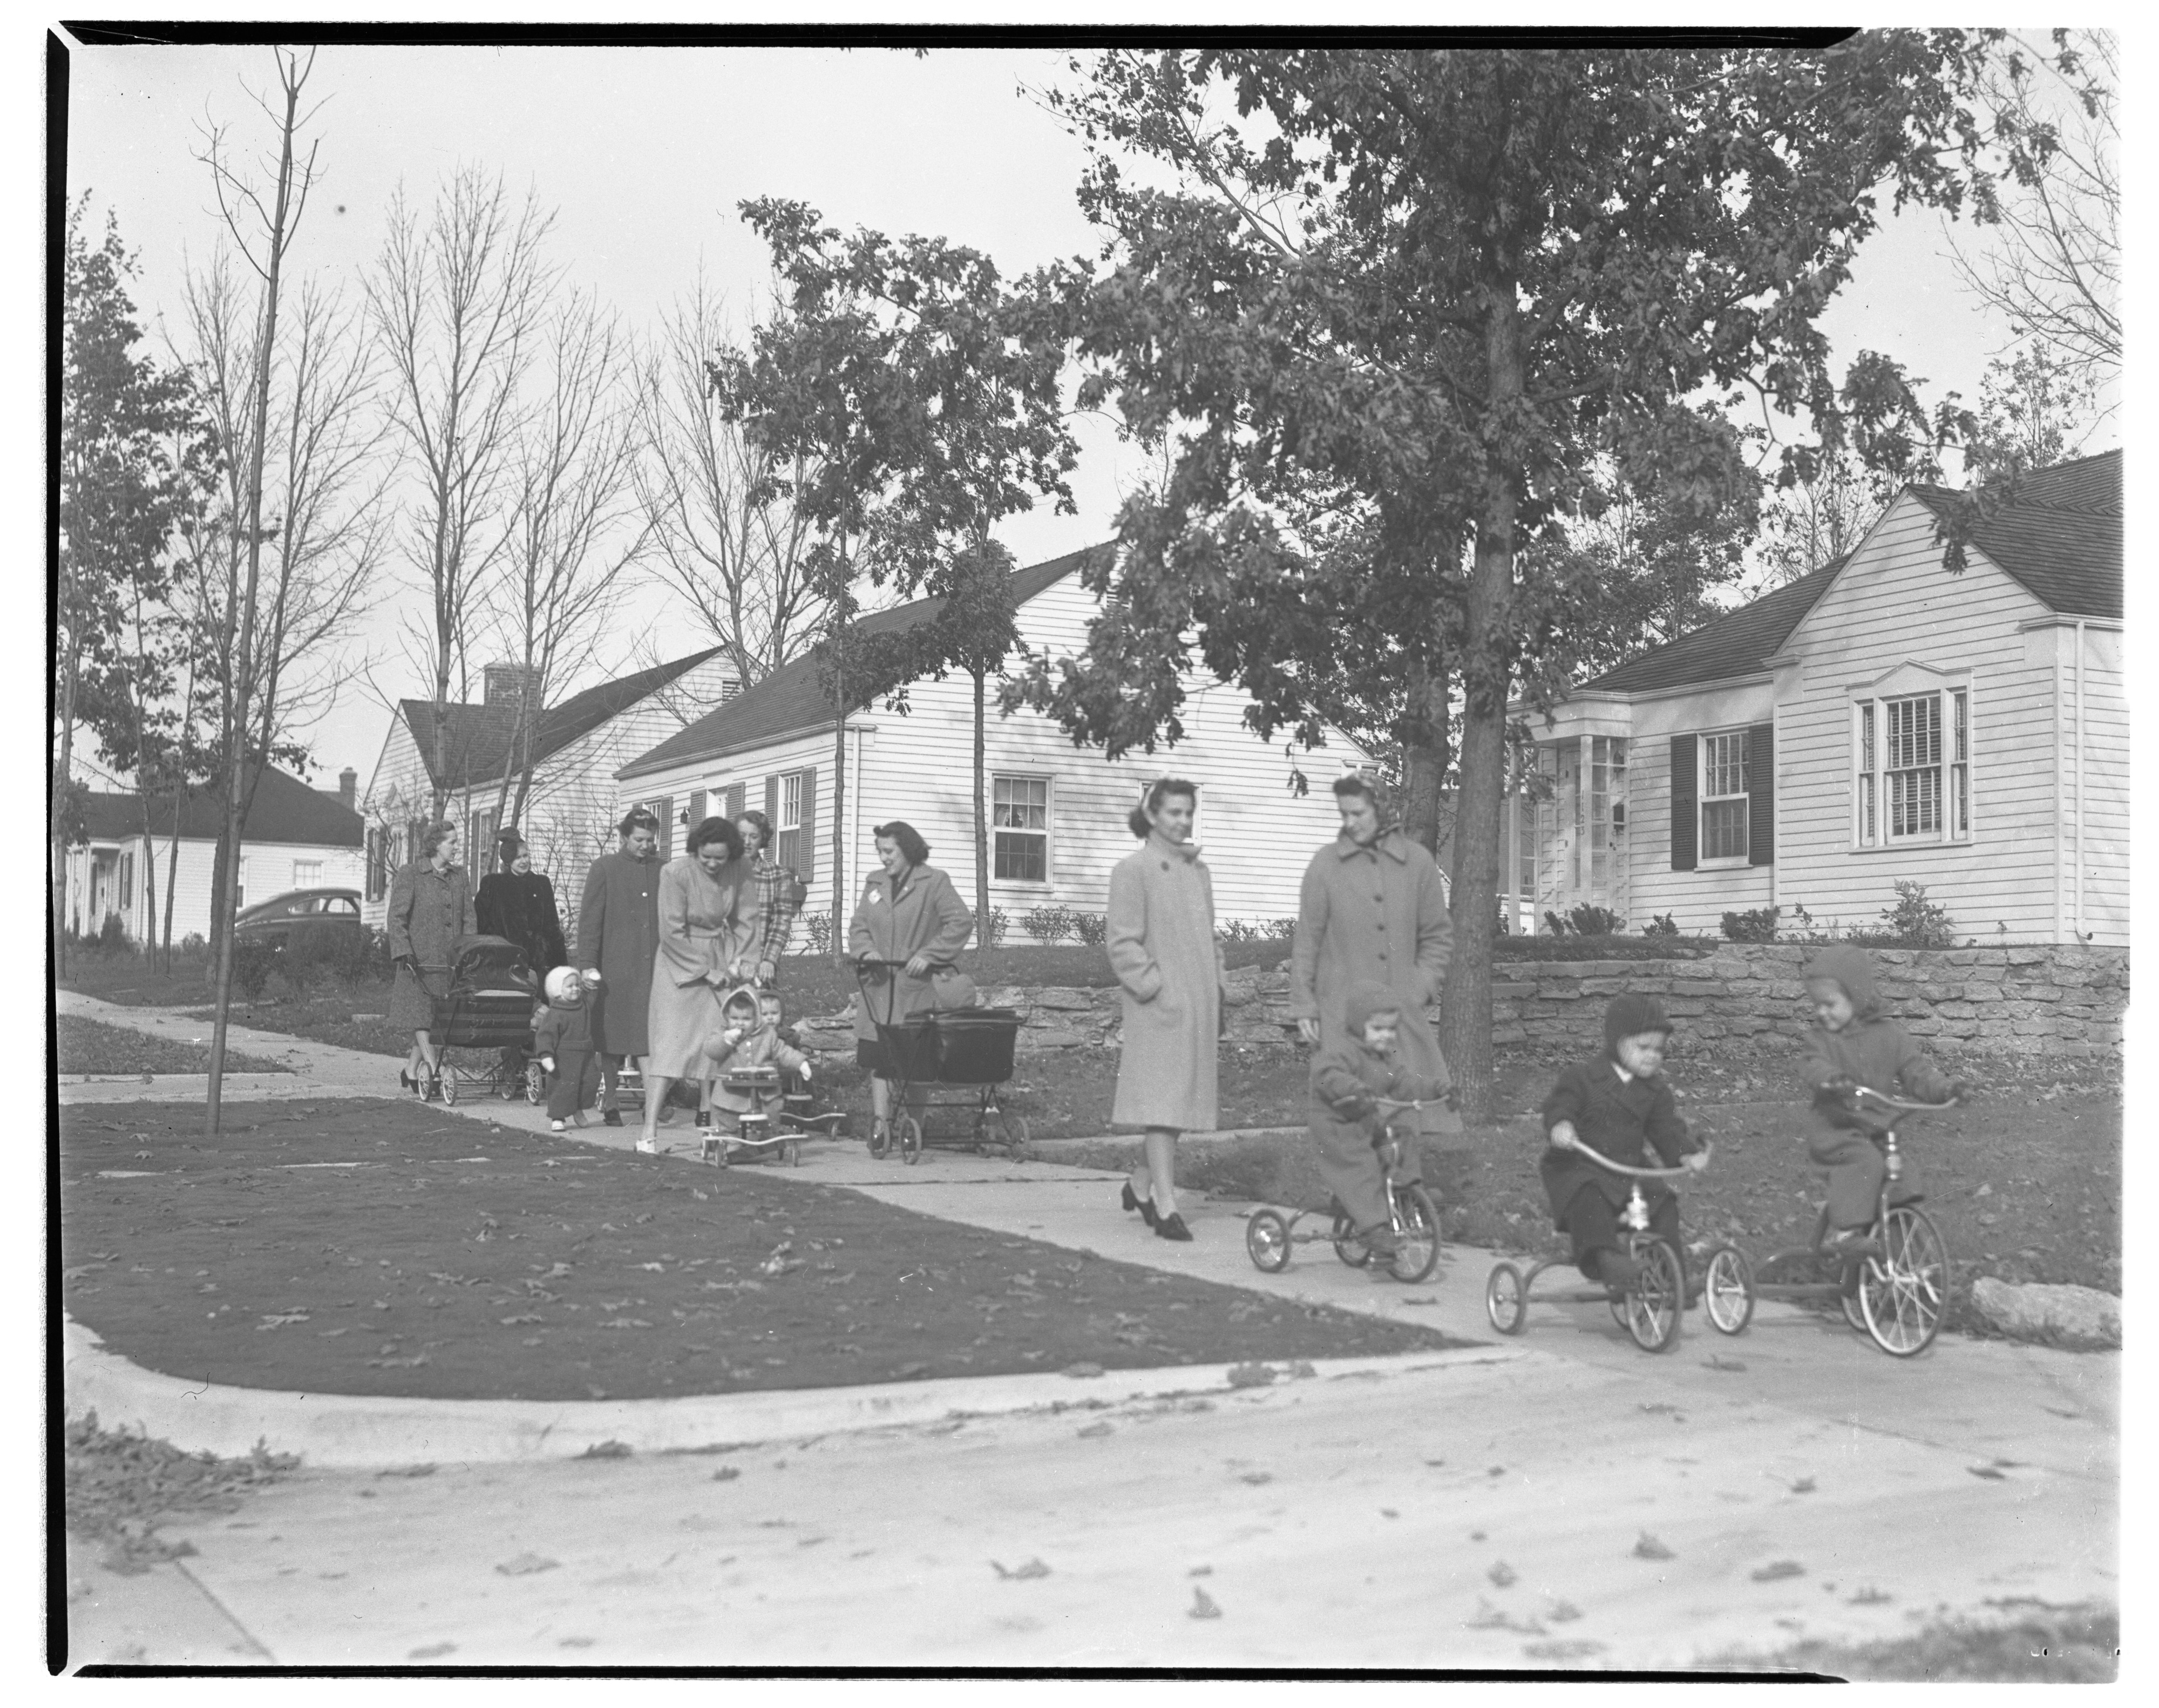 Mothers with their children, Birk Avenue, Ann Arbor, November 1941 image